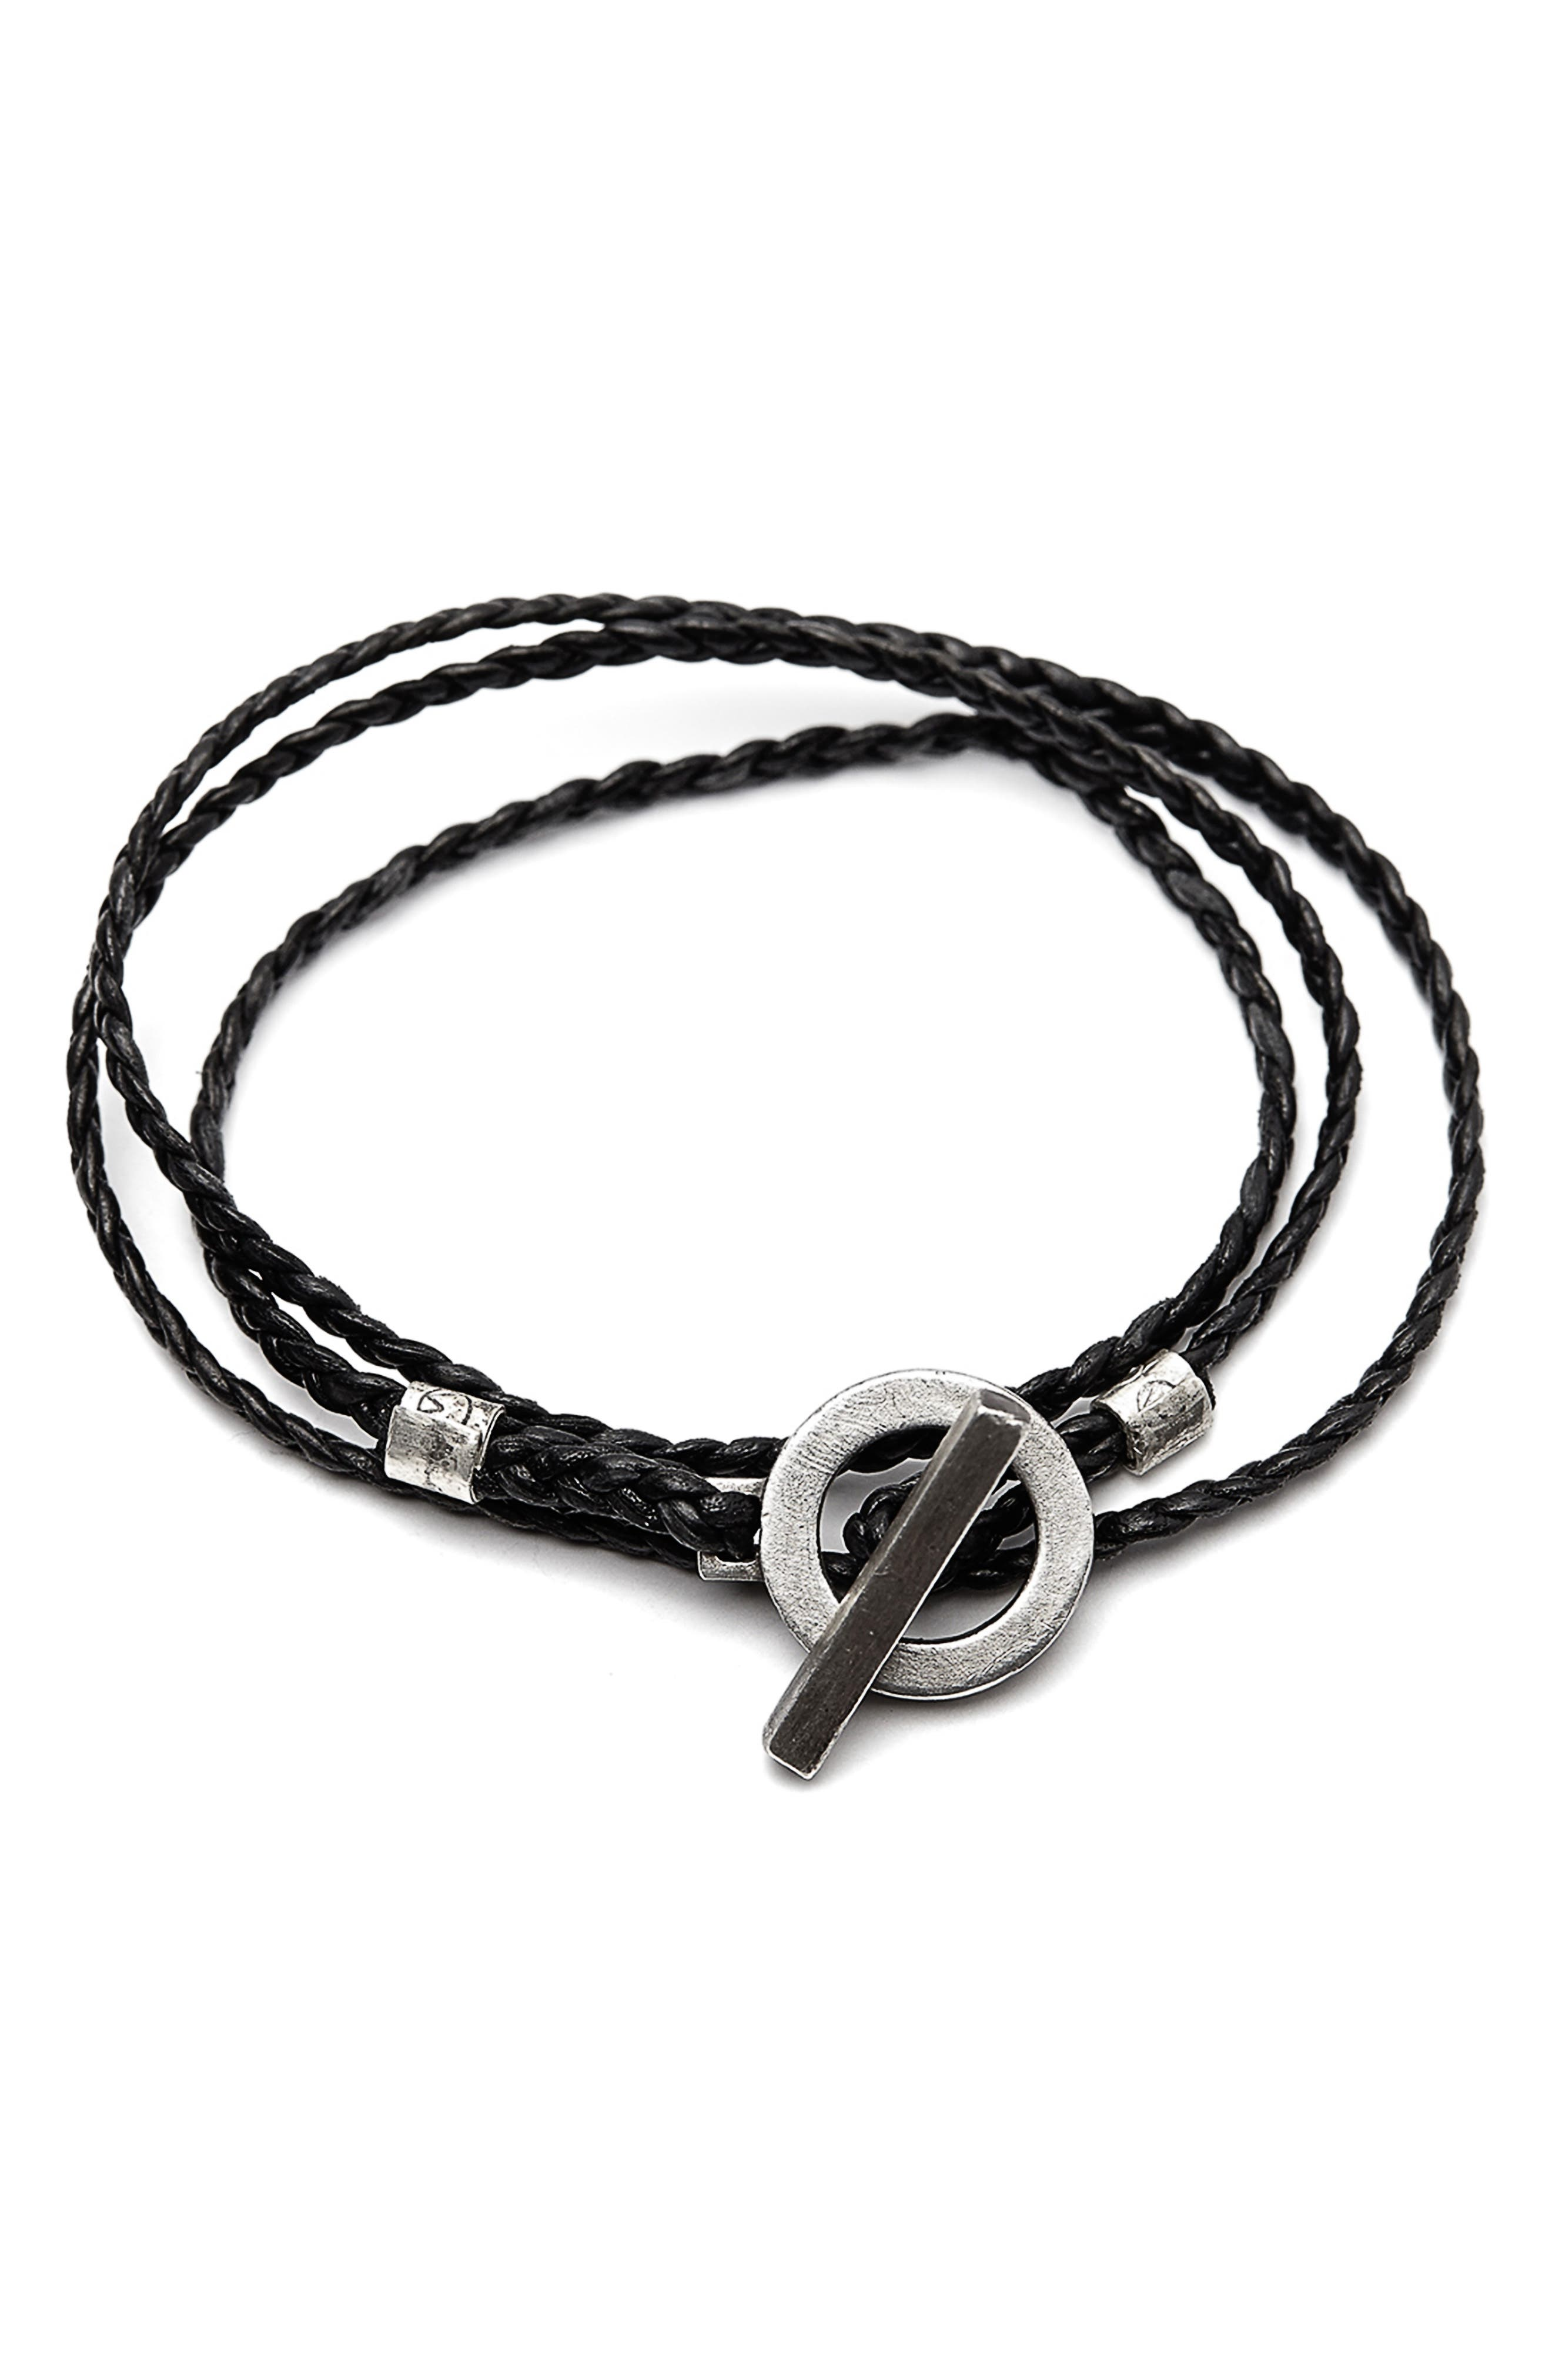 3-Wrap Braided Leather Bracelet,                         Main,                         color, SILVER/BLACK